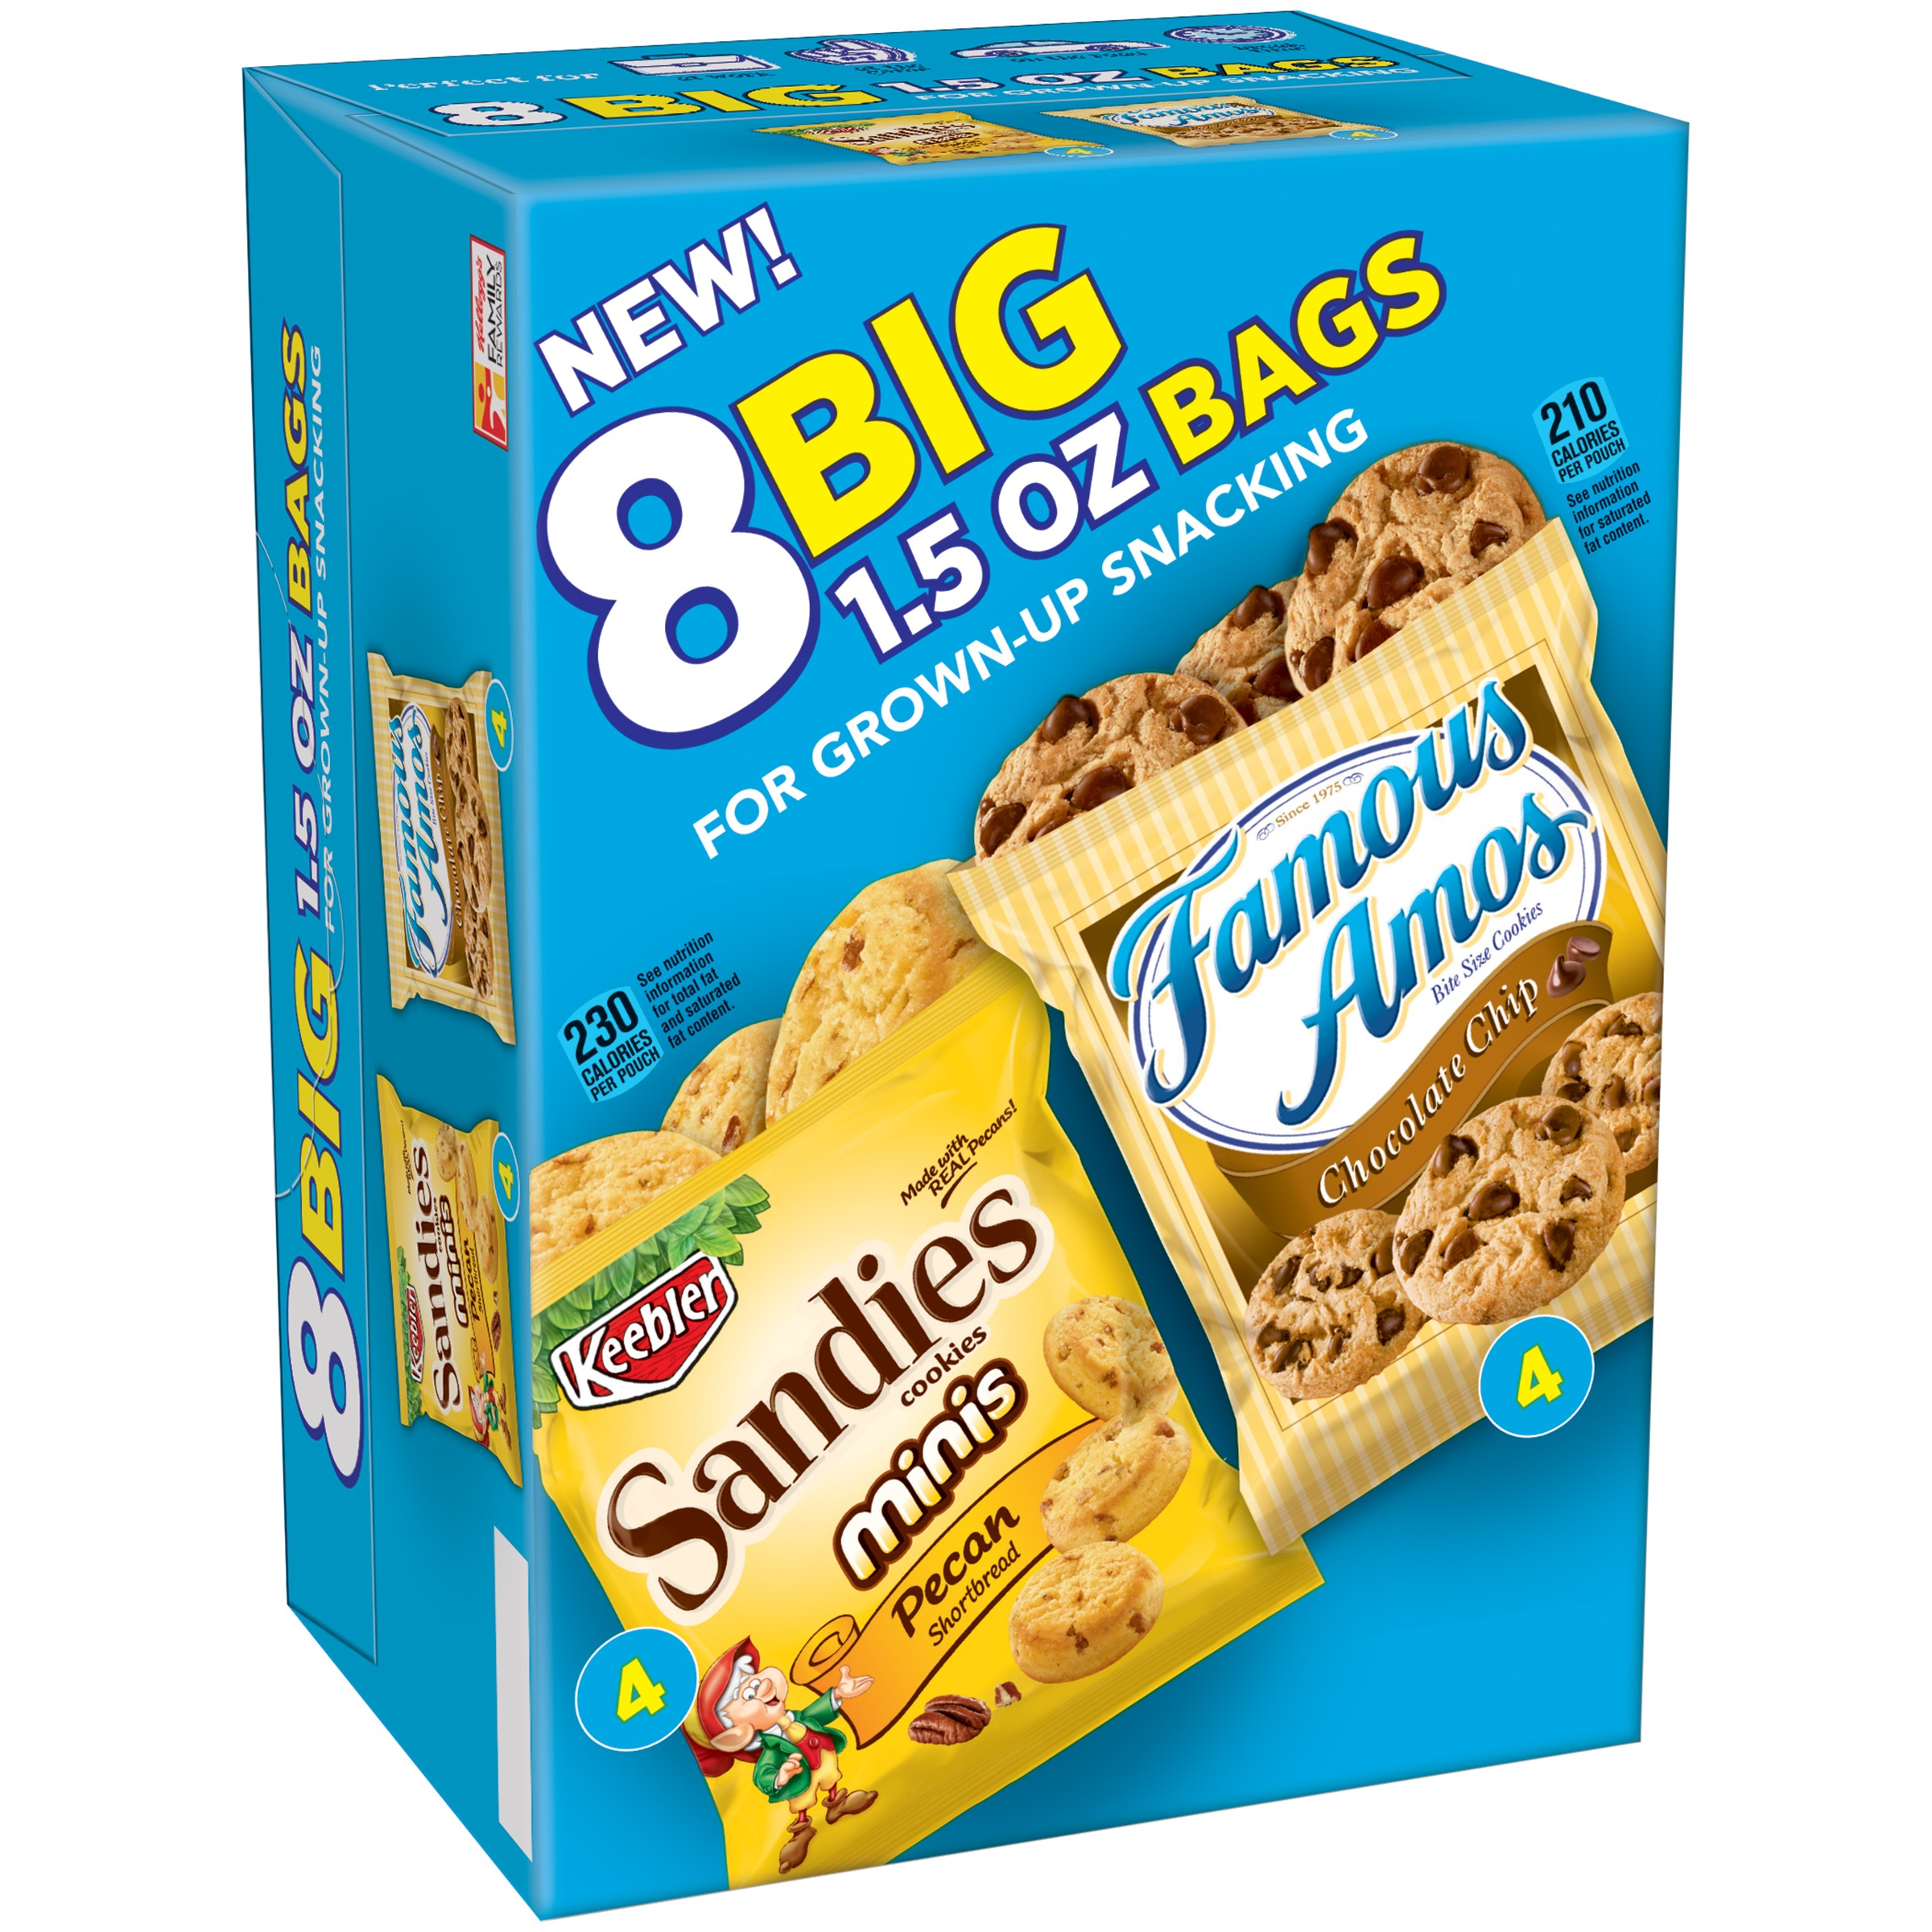 Keebler Sandies Pecan Shortbread Minis & Famous Amos Bite Size Chocolate Chip Cookies Variety Pack 8-1.5 oz. Bags